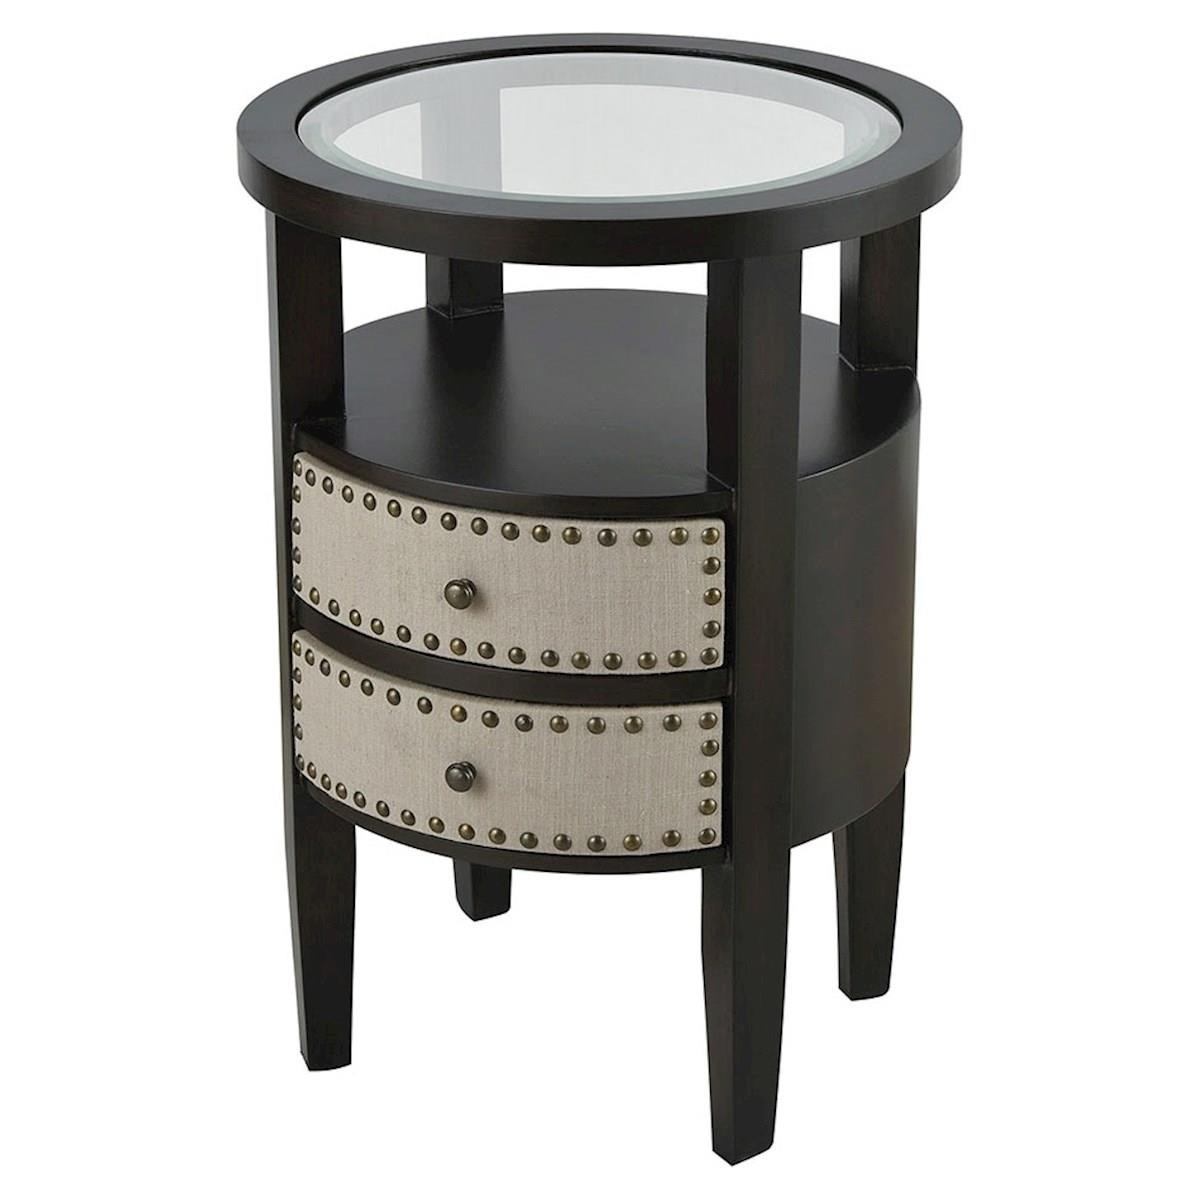 Stein World 1677tables Round End Table - Item Number: 16776